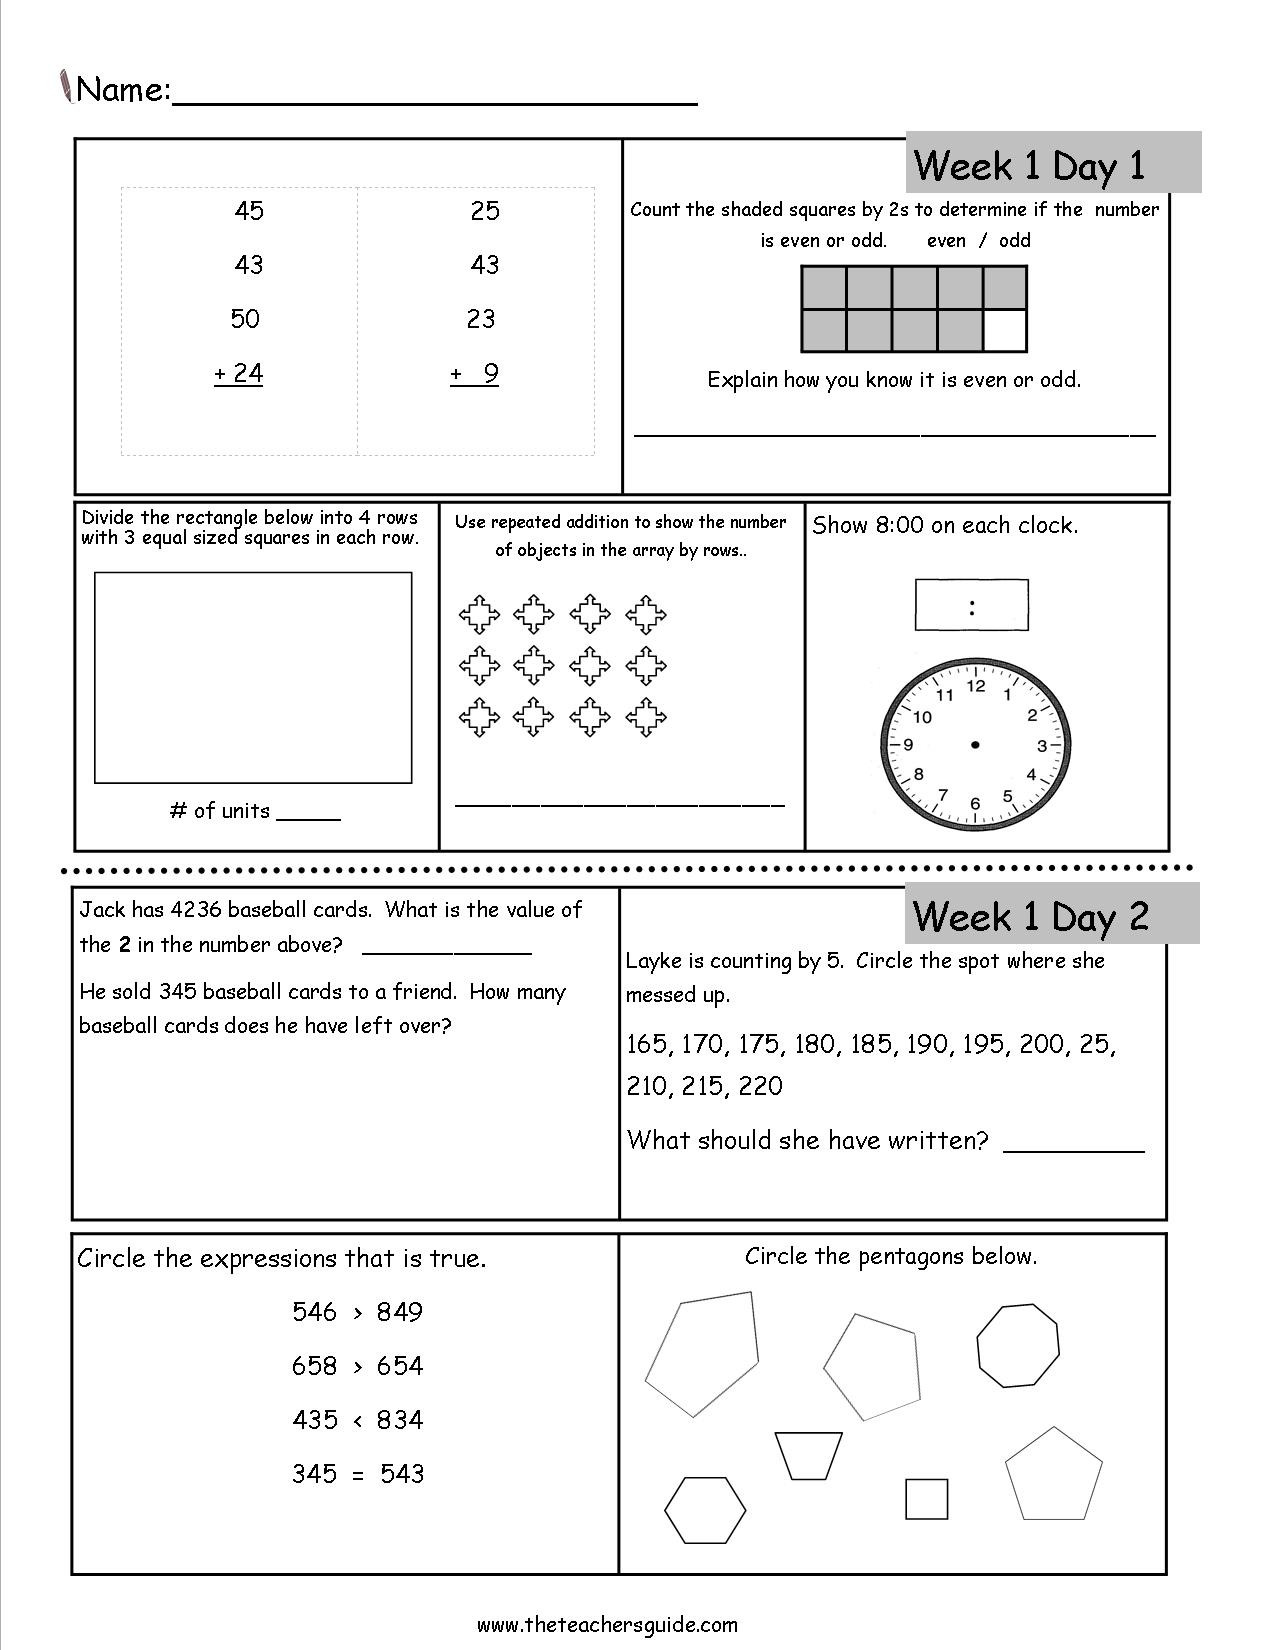 3rd Grade Spelling Worksheets Pdf Math Worksheet Staggering Free Third Grade Math Worksheets